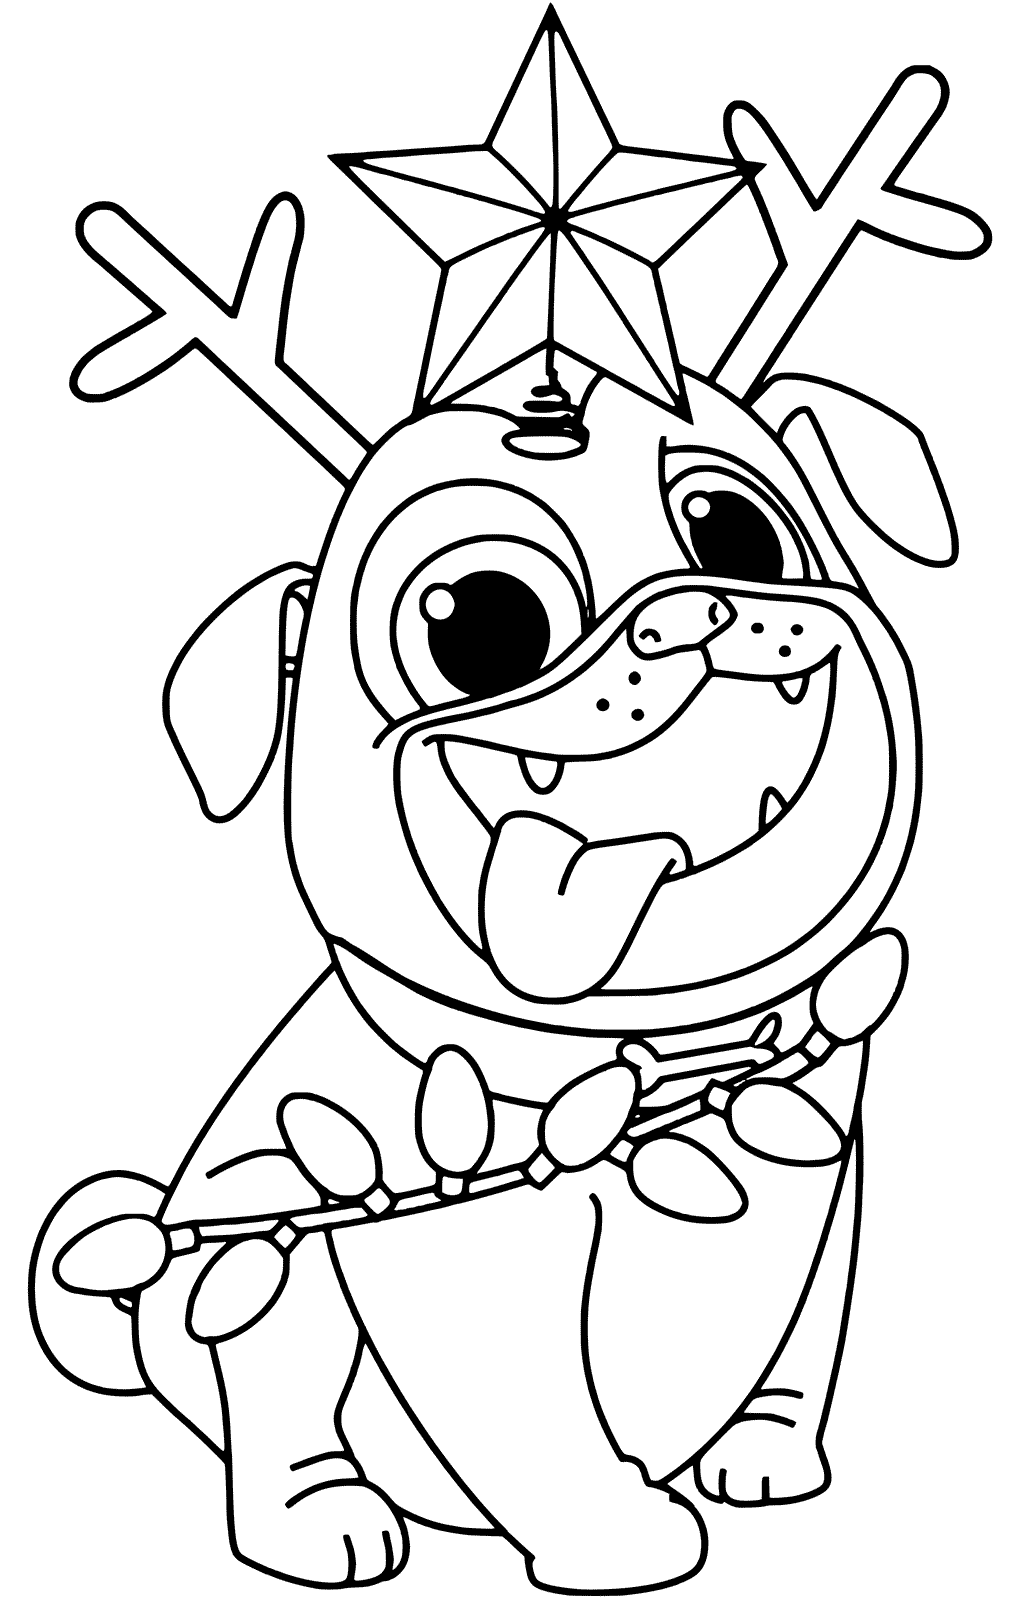 puppy coloring page printable puppy coloring pages for kids cool2bkids puppy coloring page